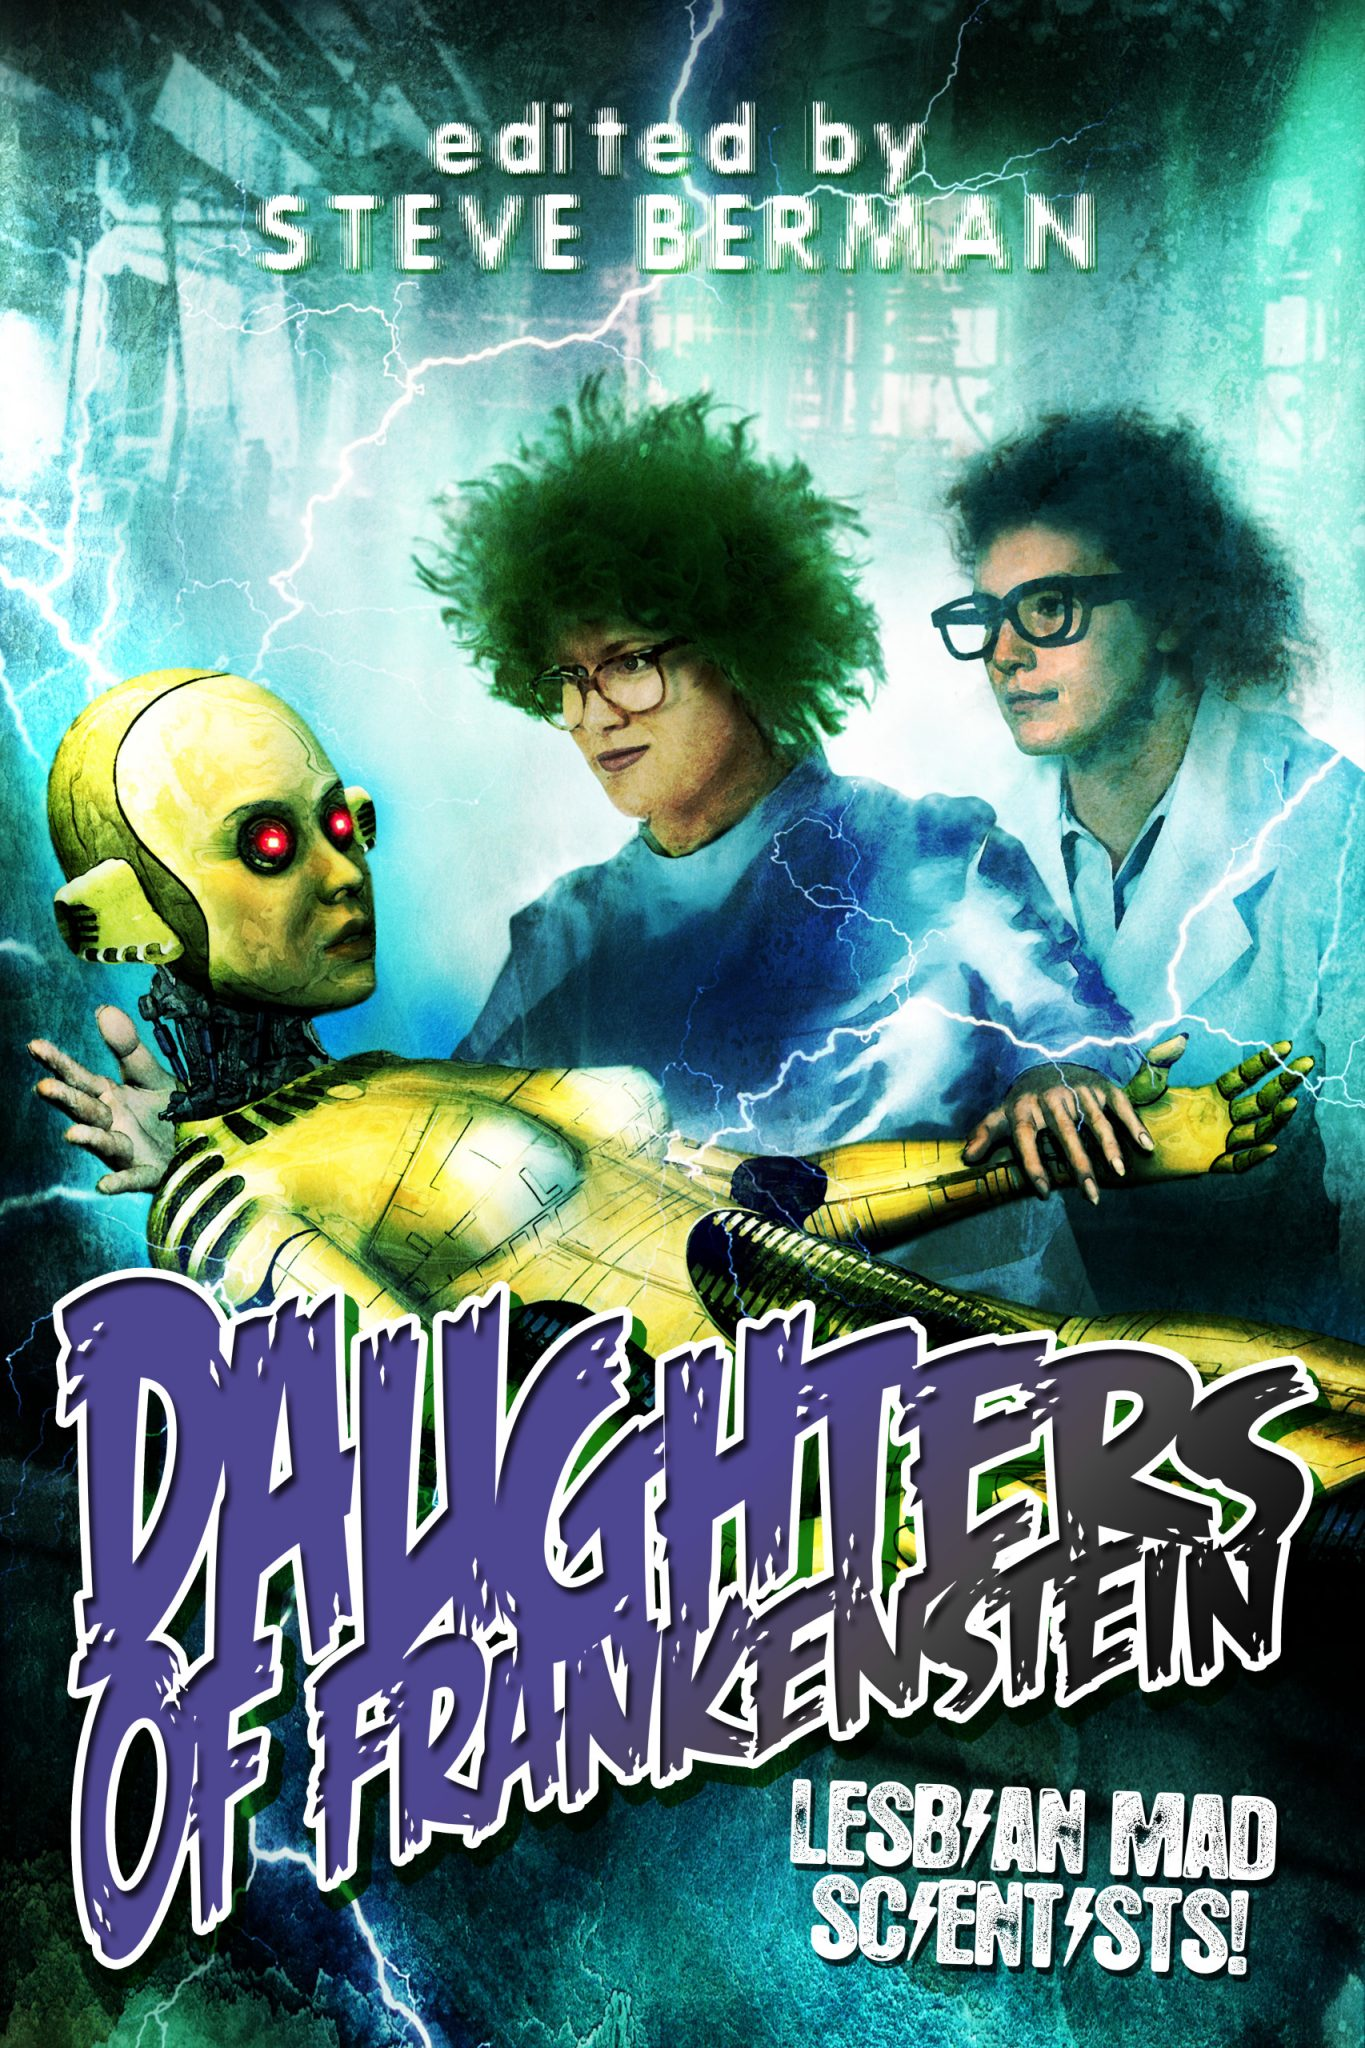 daughtersoffrankenstein